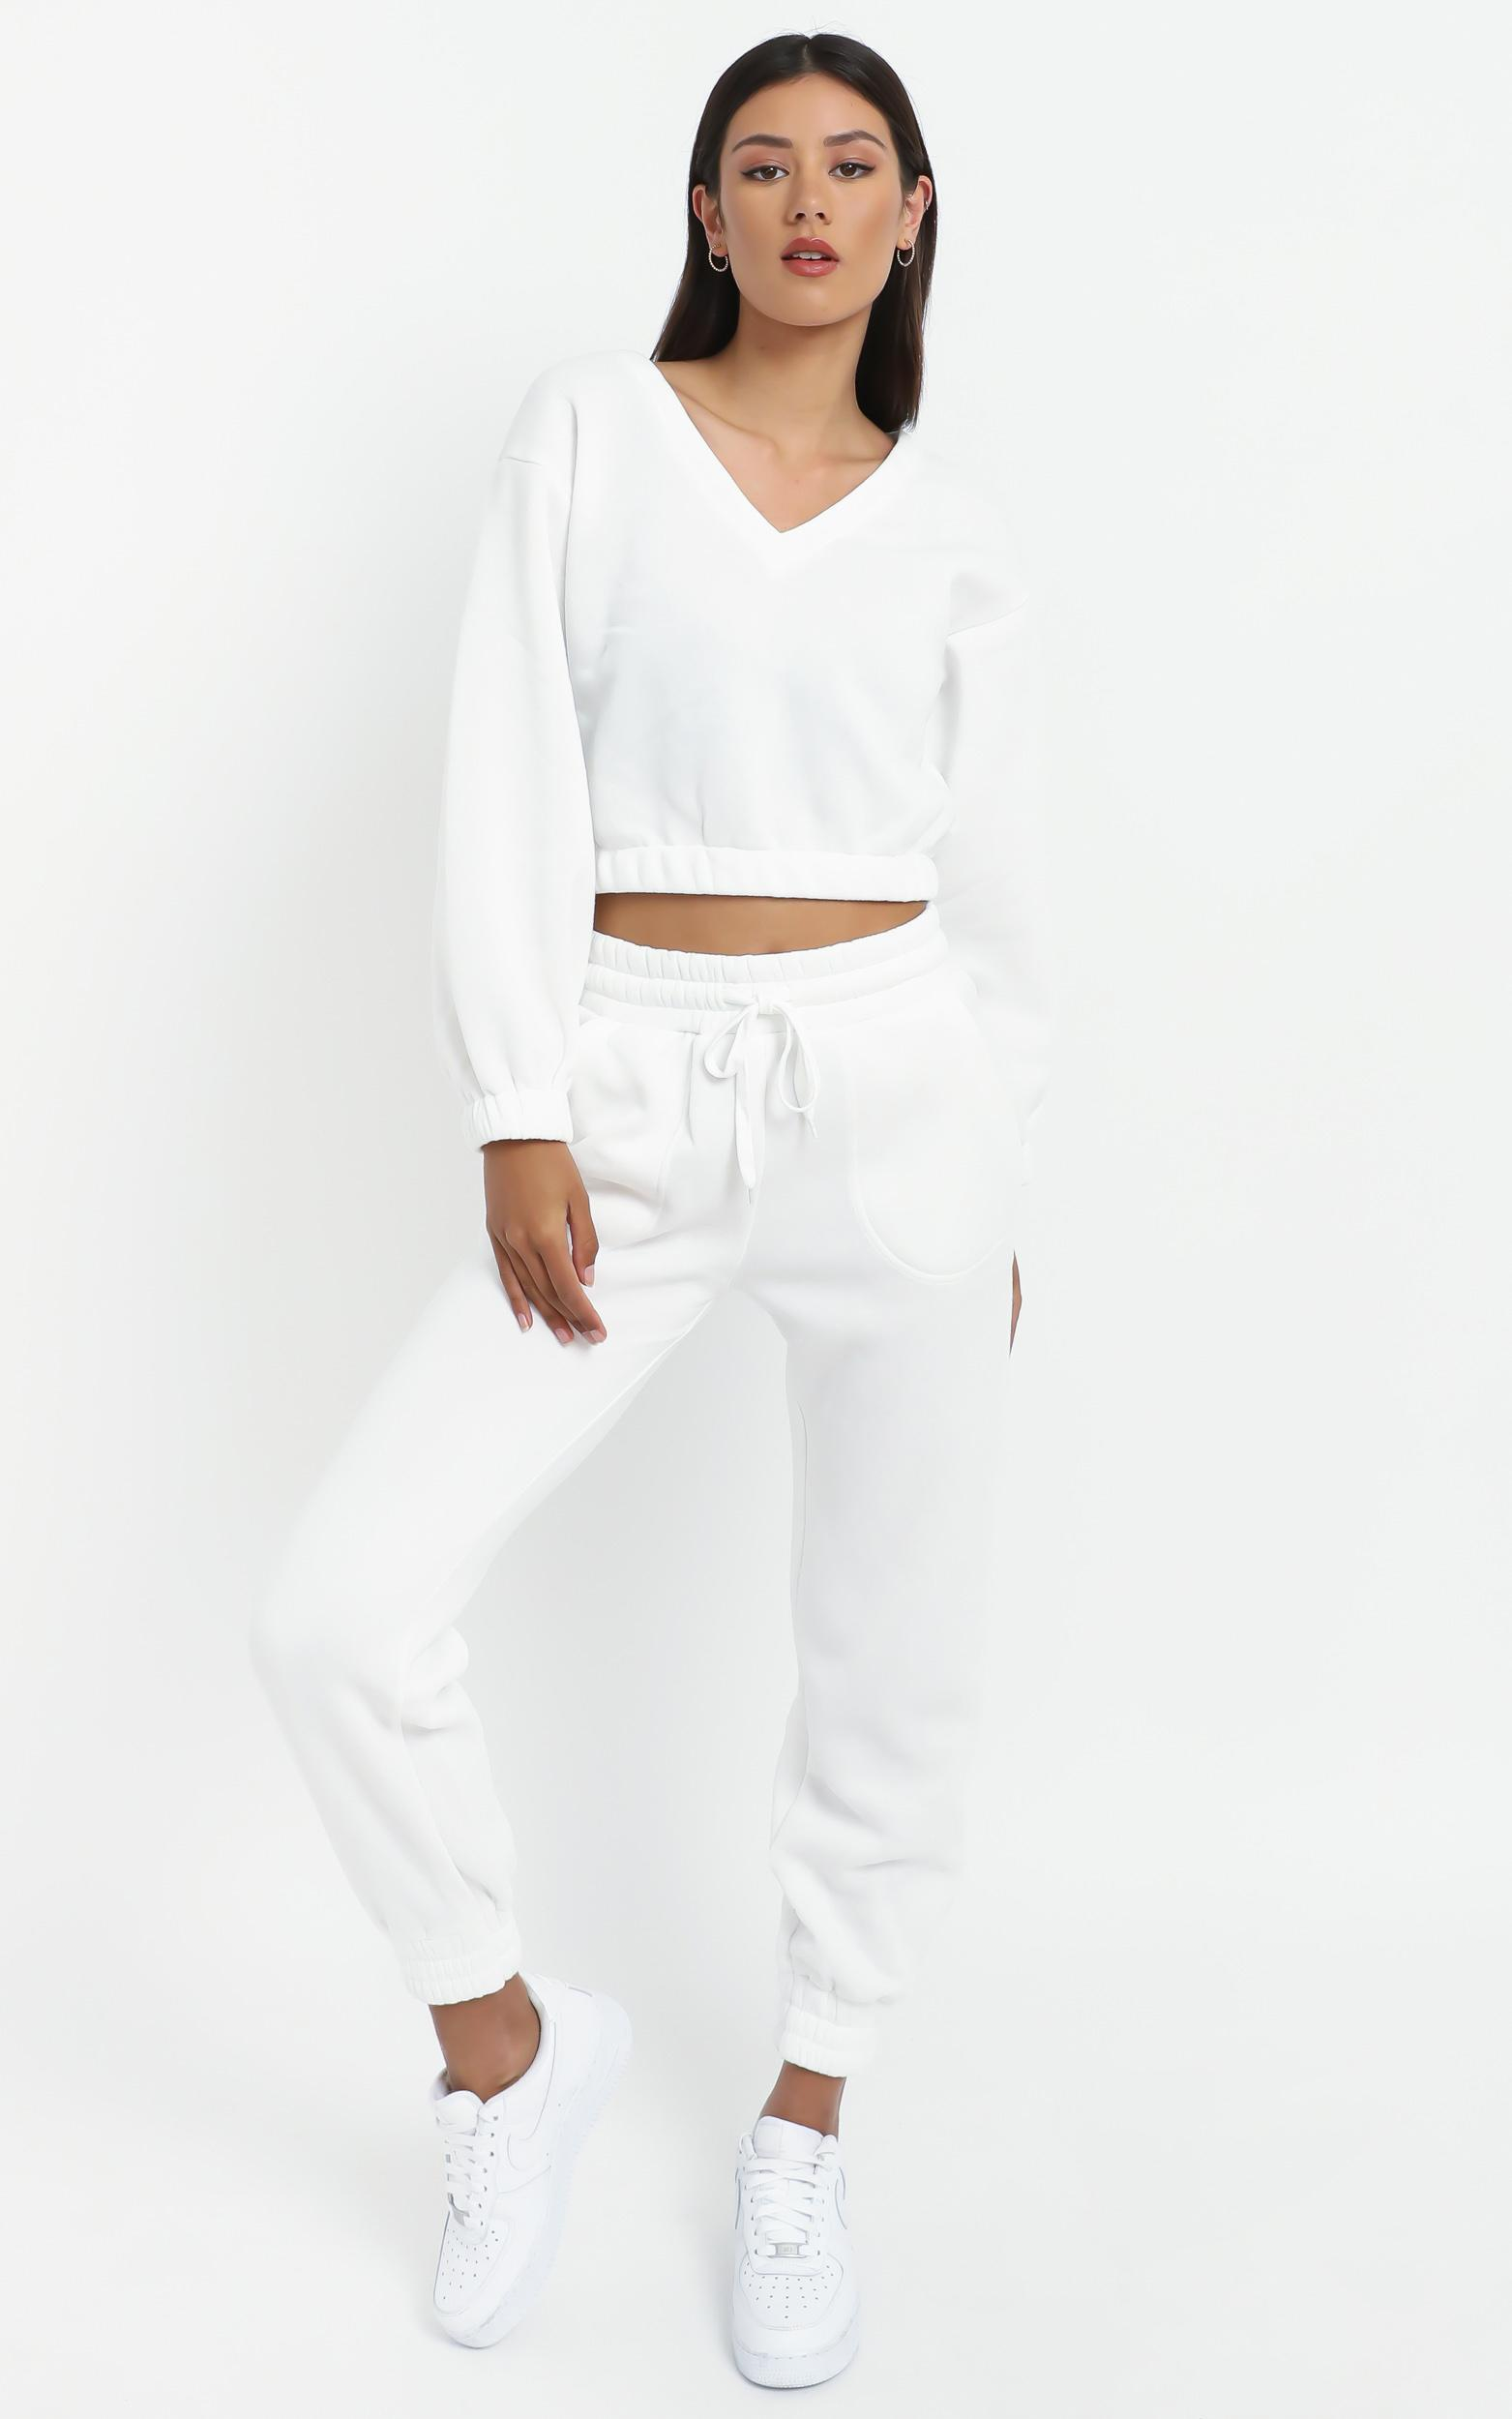 Mireya Sweat pants in White - 16 (XXL), White, hi-res image number null